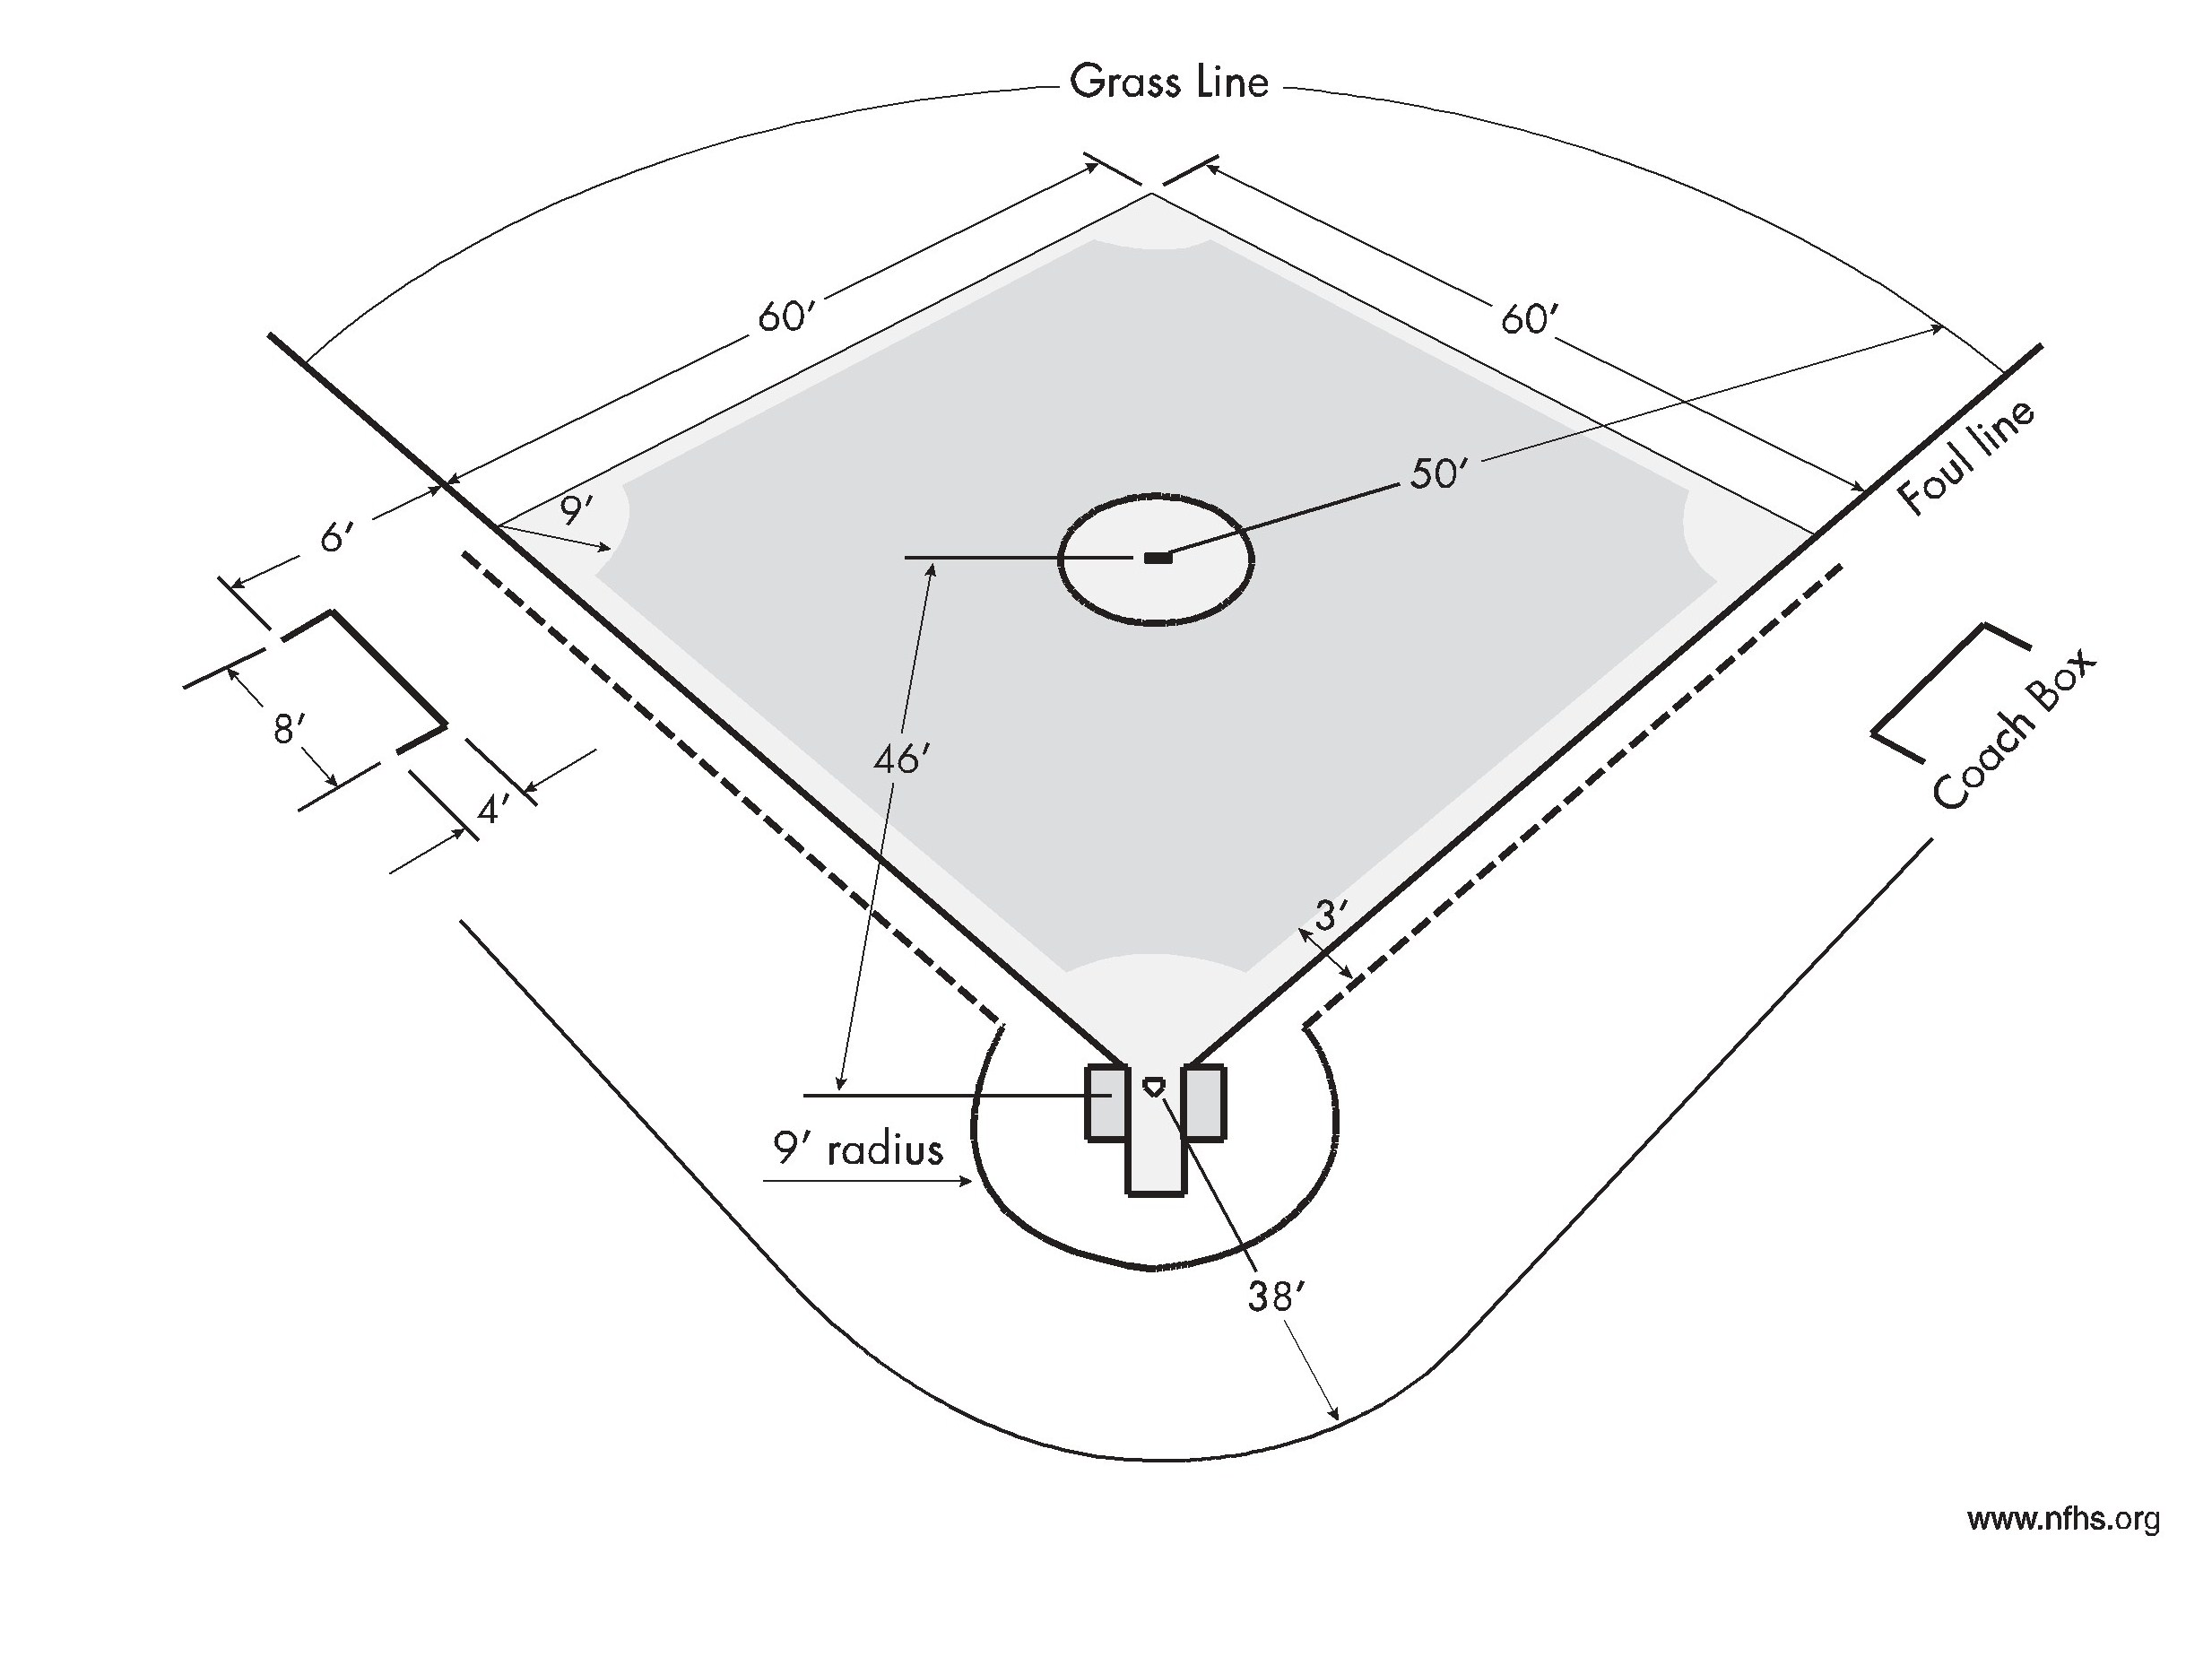 regulation baseball field diagram three phase switch wiring softball measurements pictures to pin on pinterest